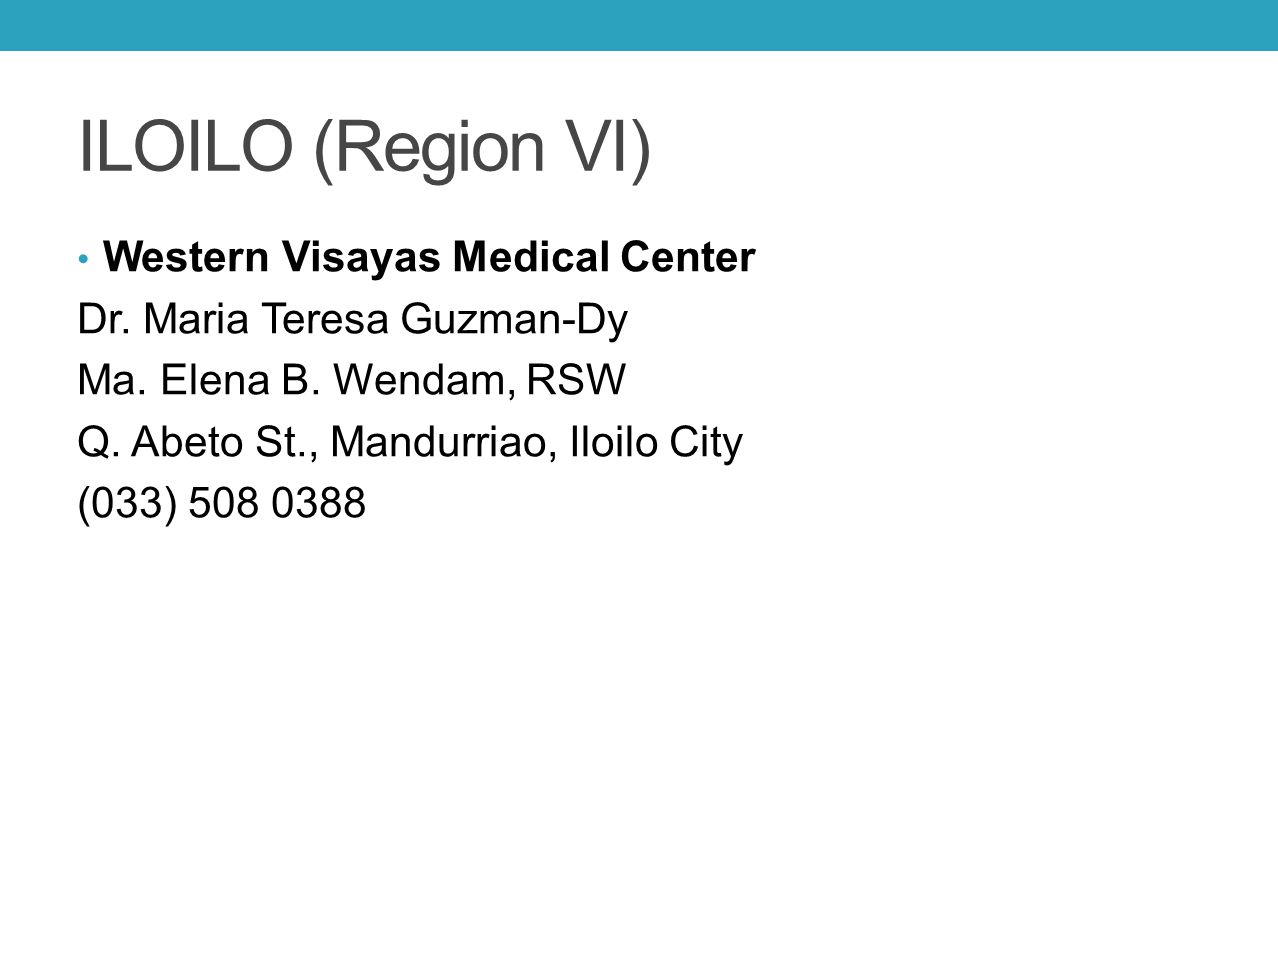 ILOILO (Region VI) Western Visayas Medical Center